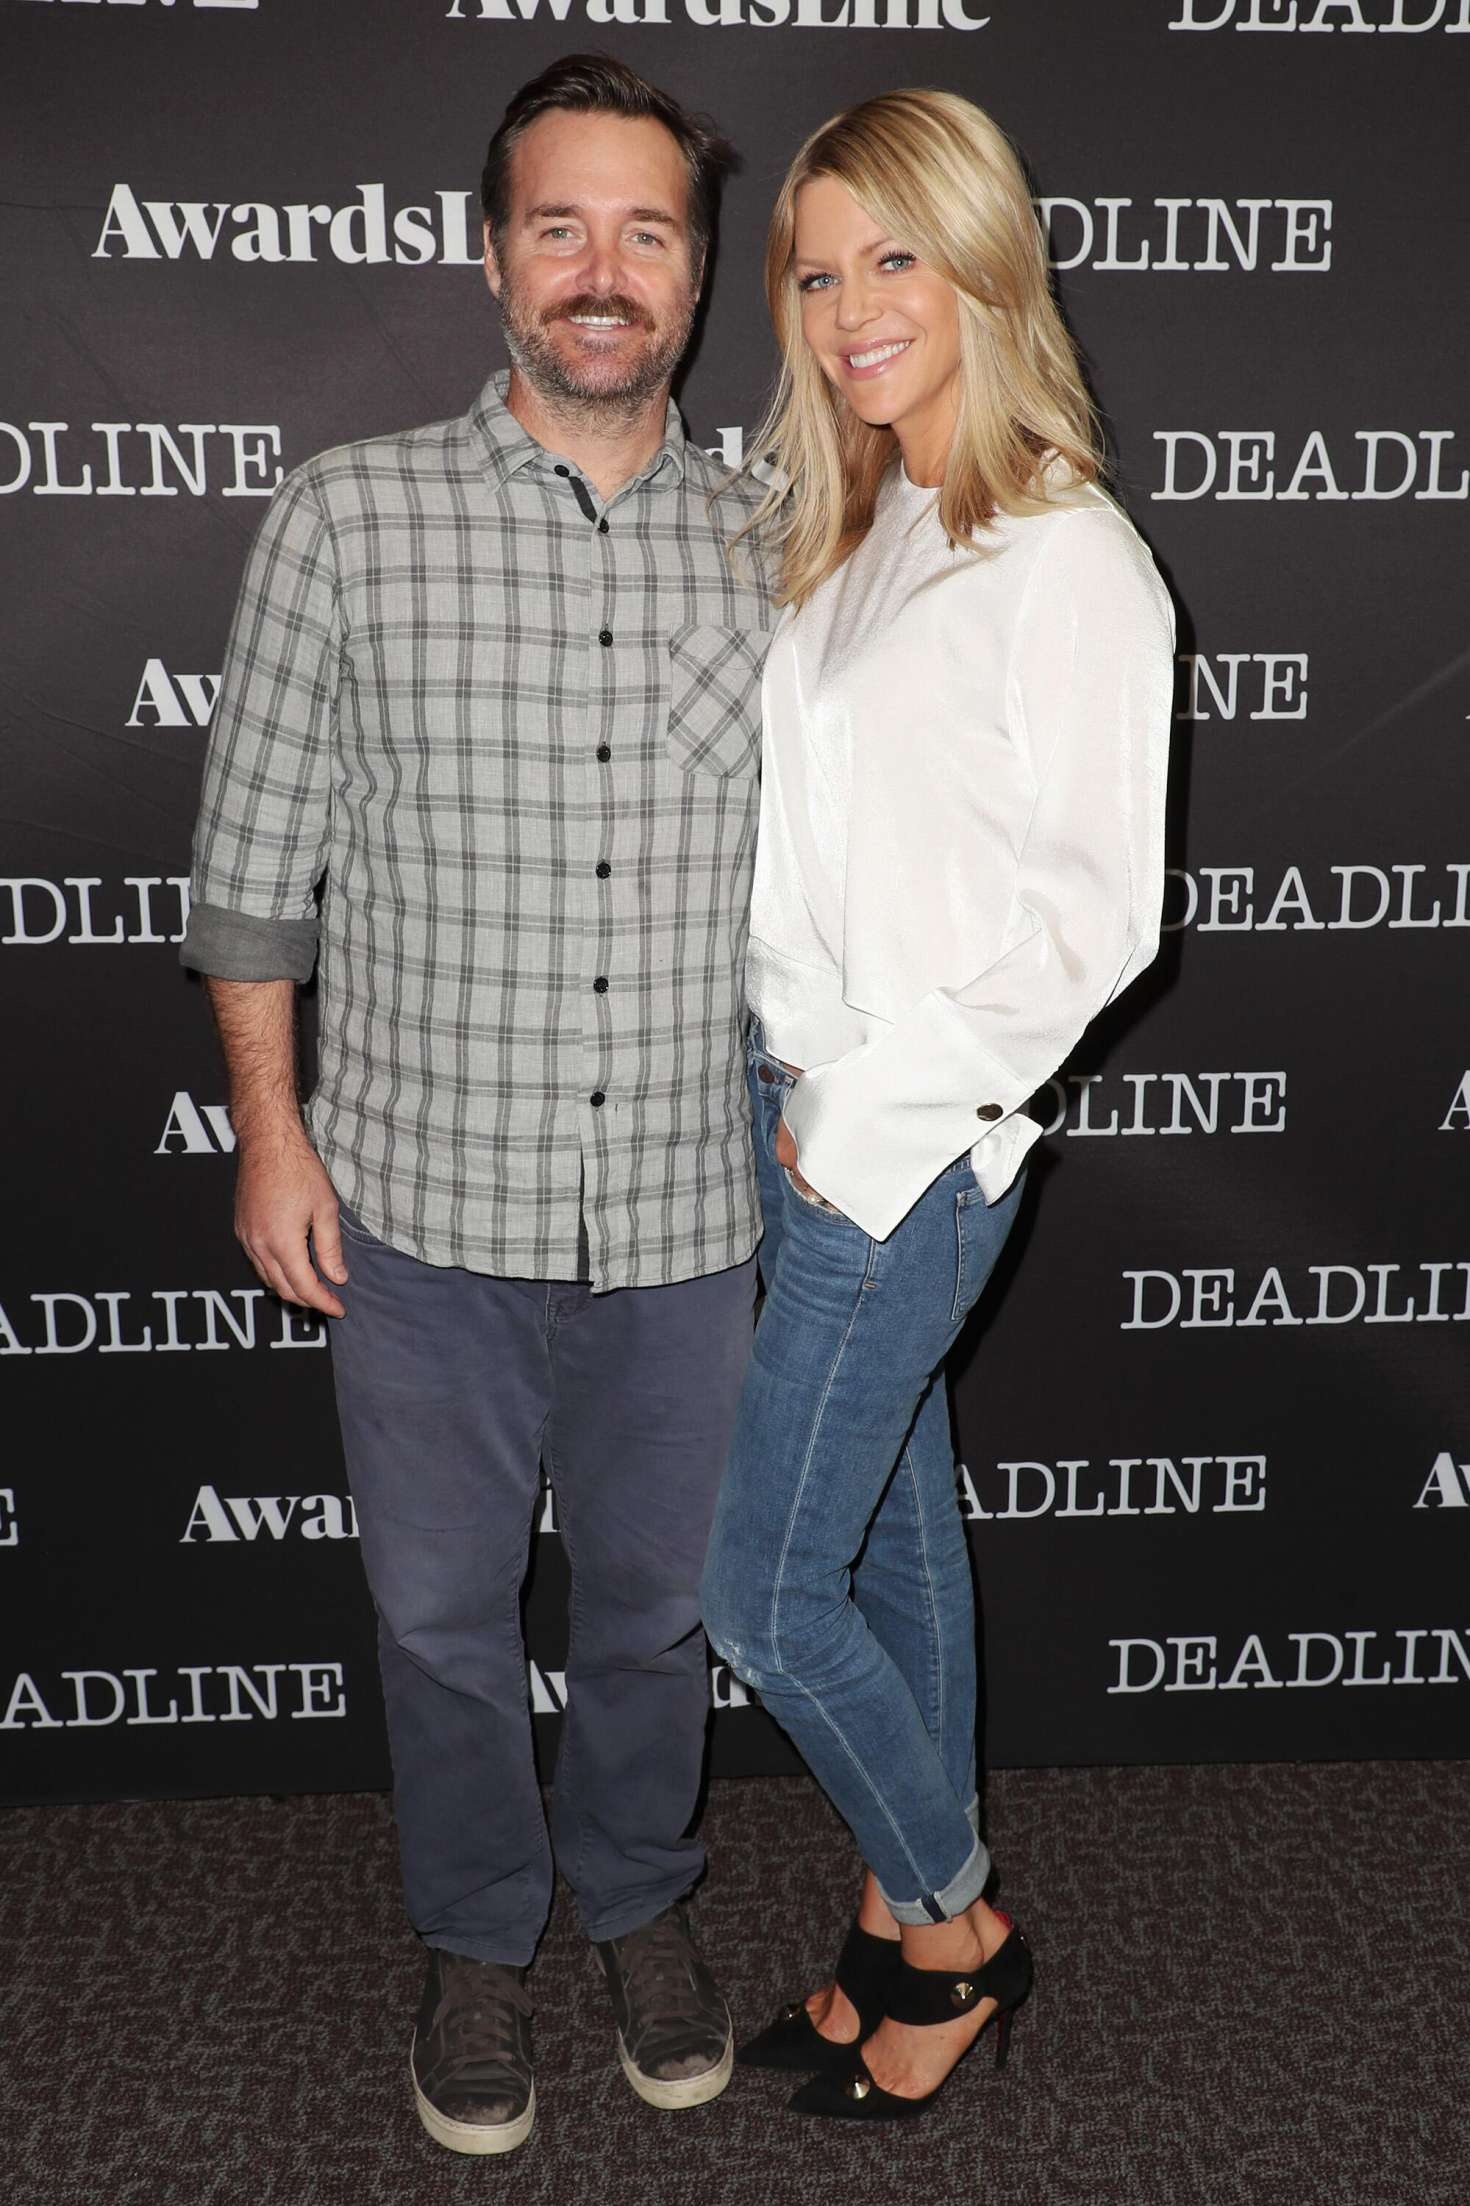 Discussion on this topic: Dajana rads see through, kaitlin-olson-emmy-awards-in-los-angeles/